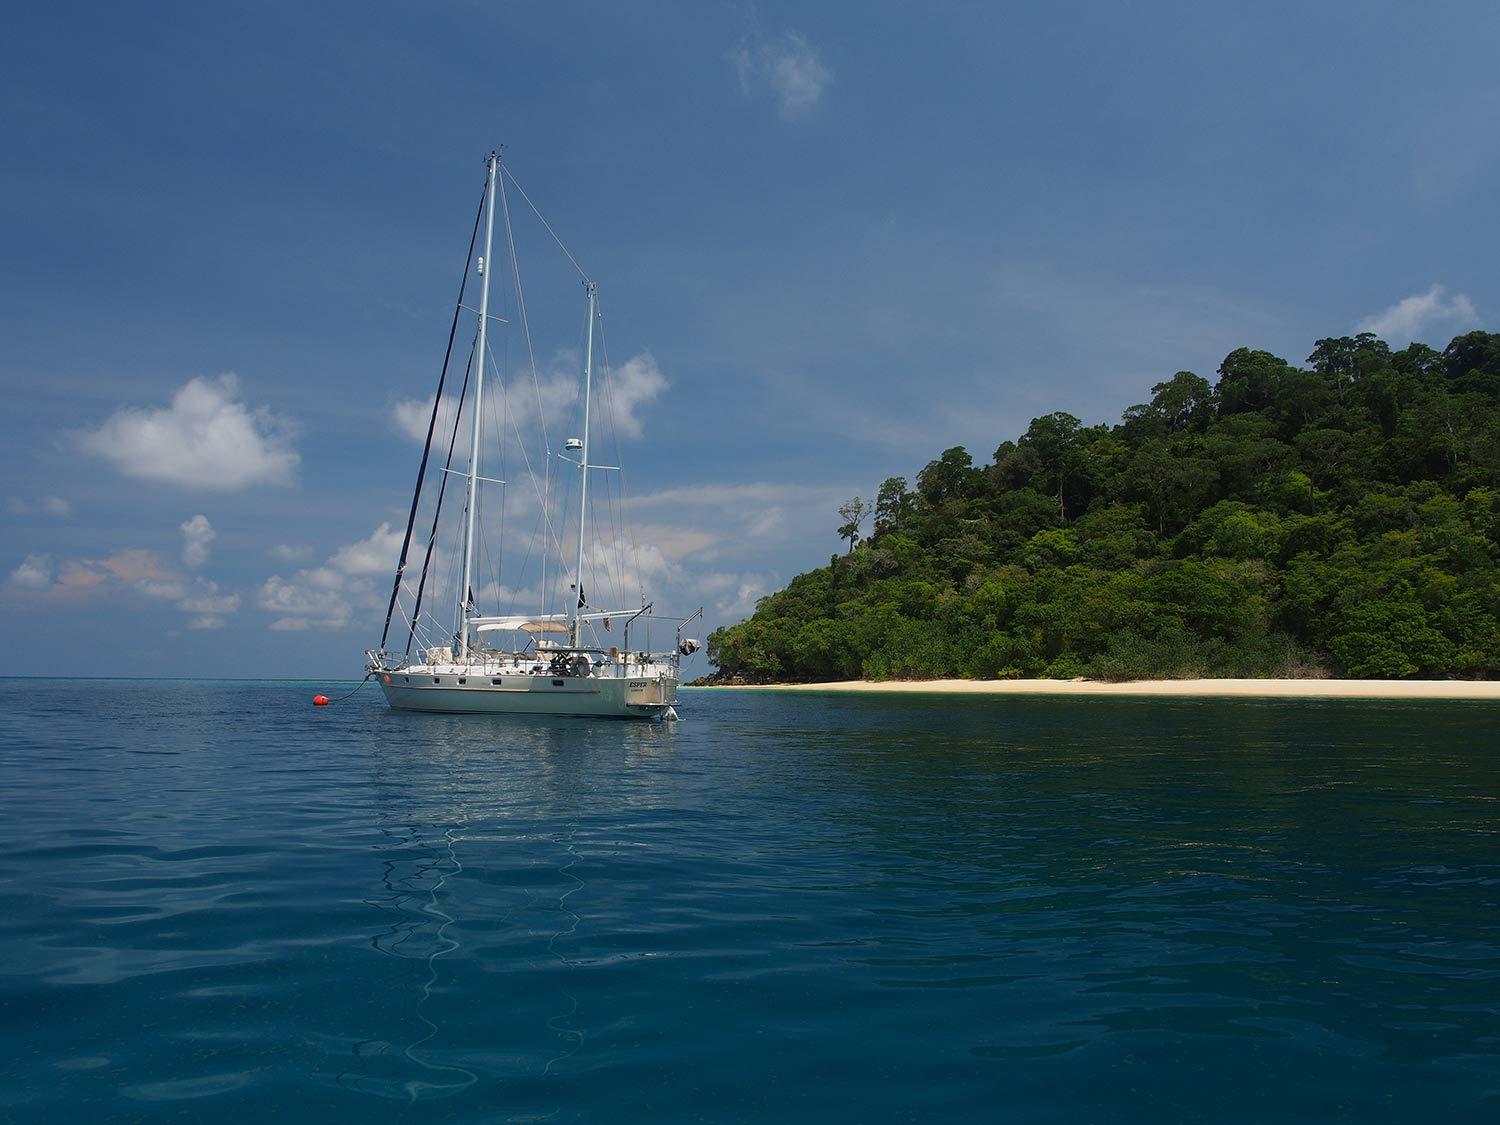 esper-at-anchor-ko-rok-thailand-on-mooring